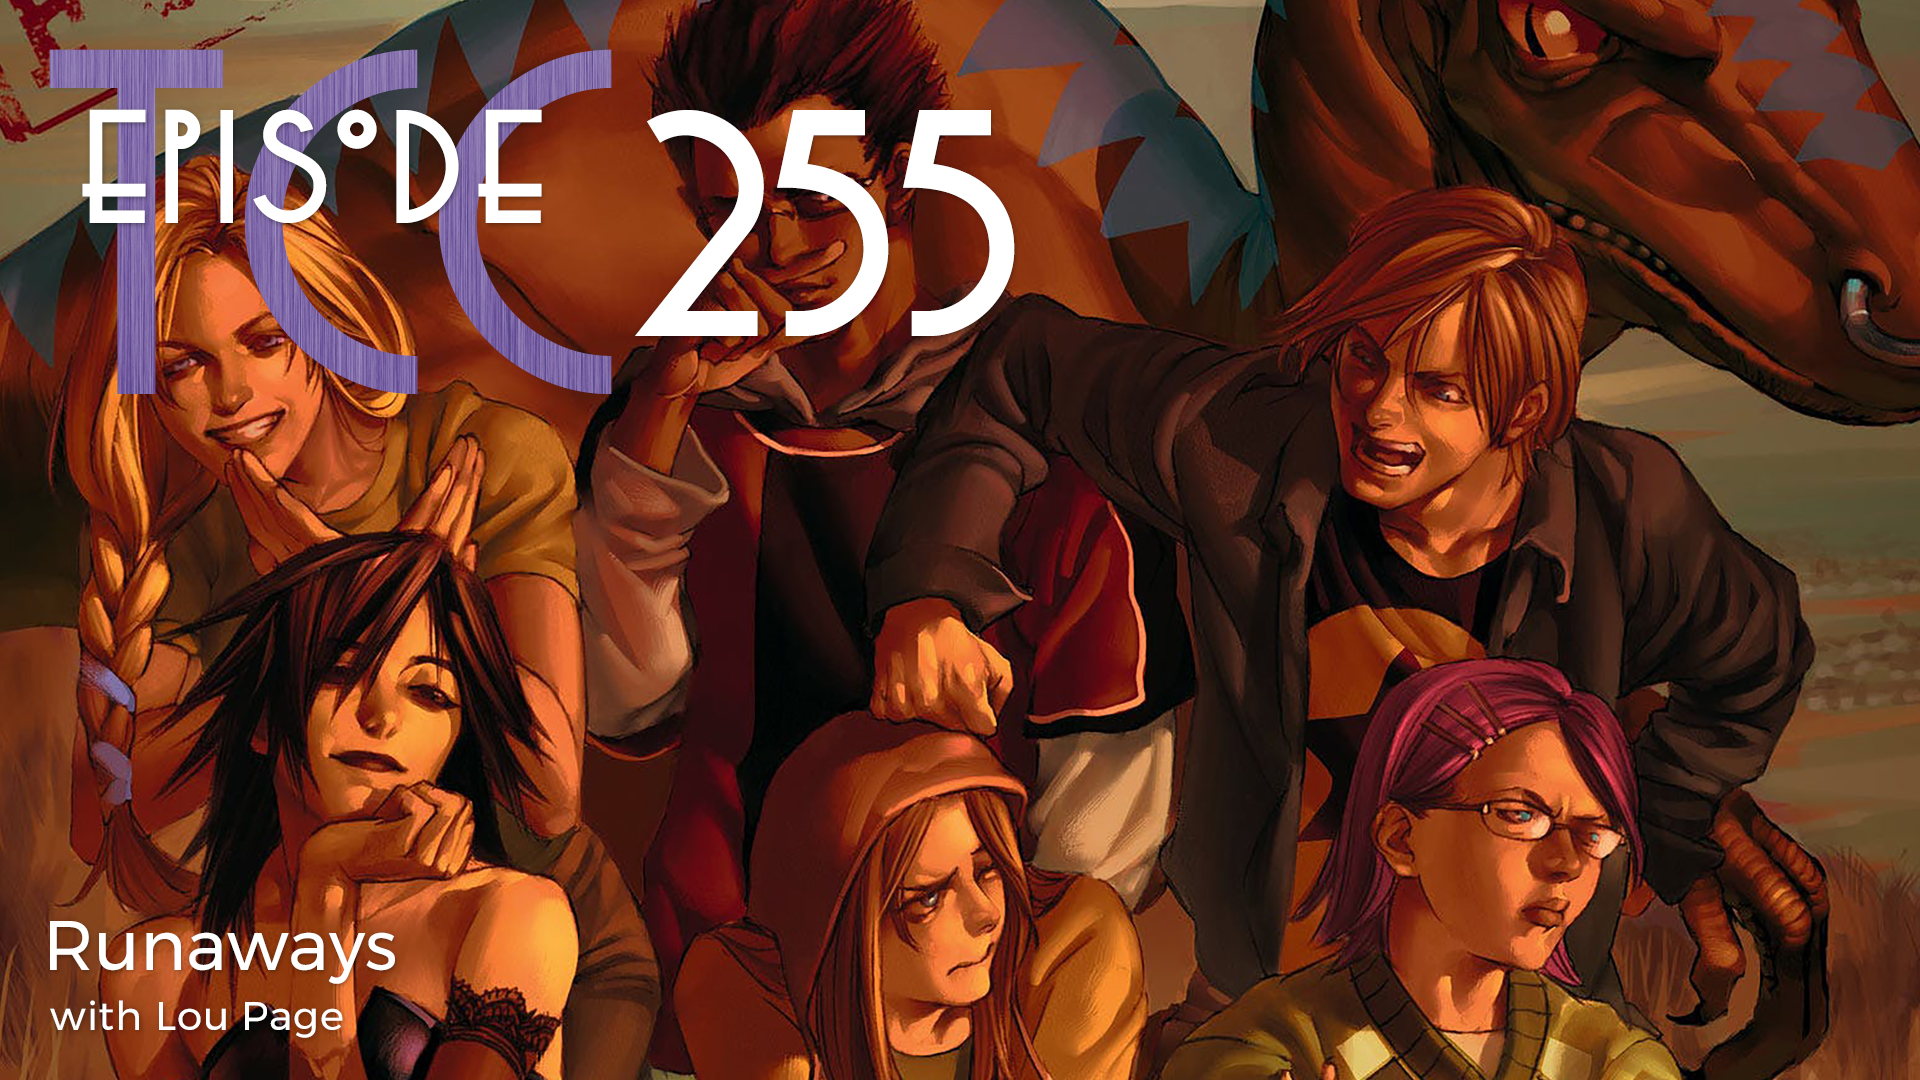 The Citadel Cafe 255: Runaways